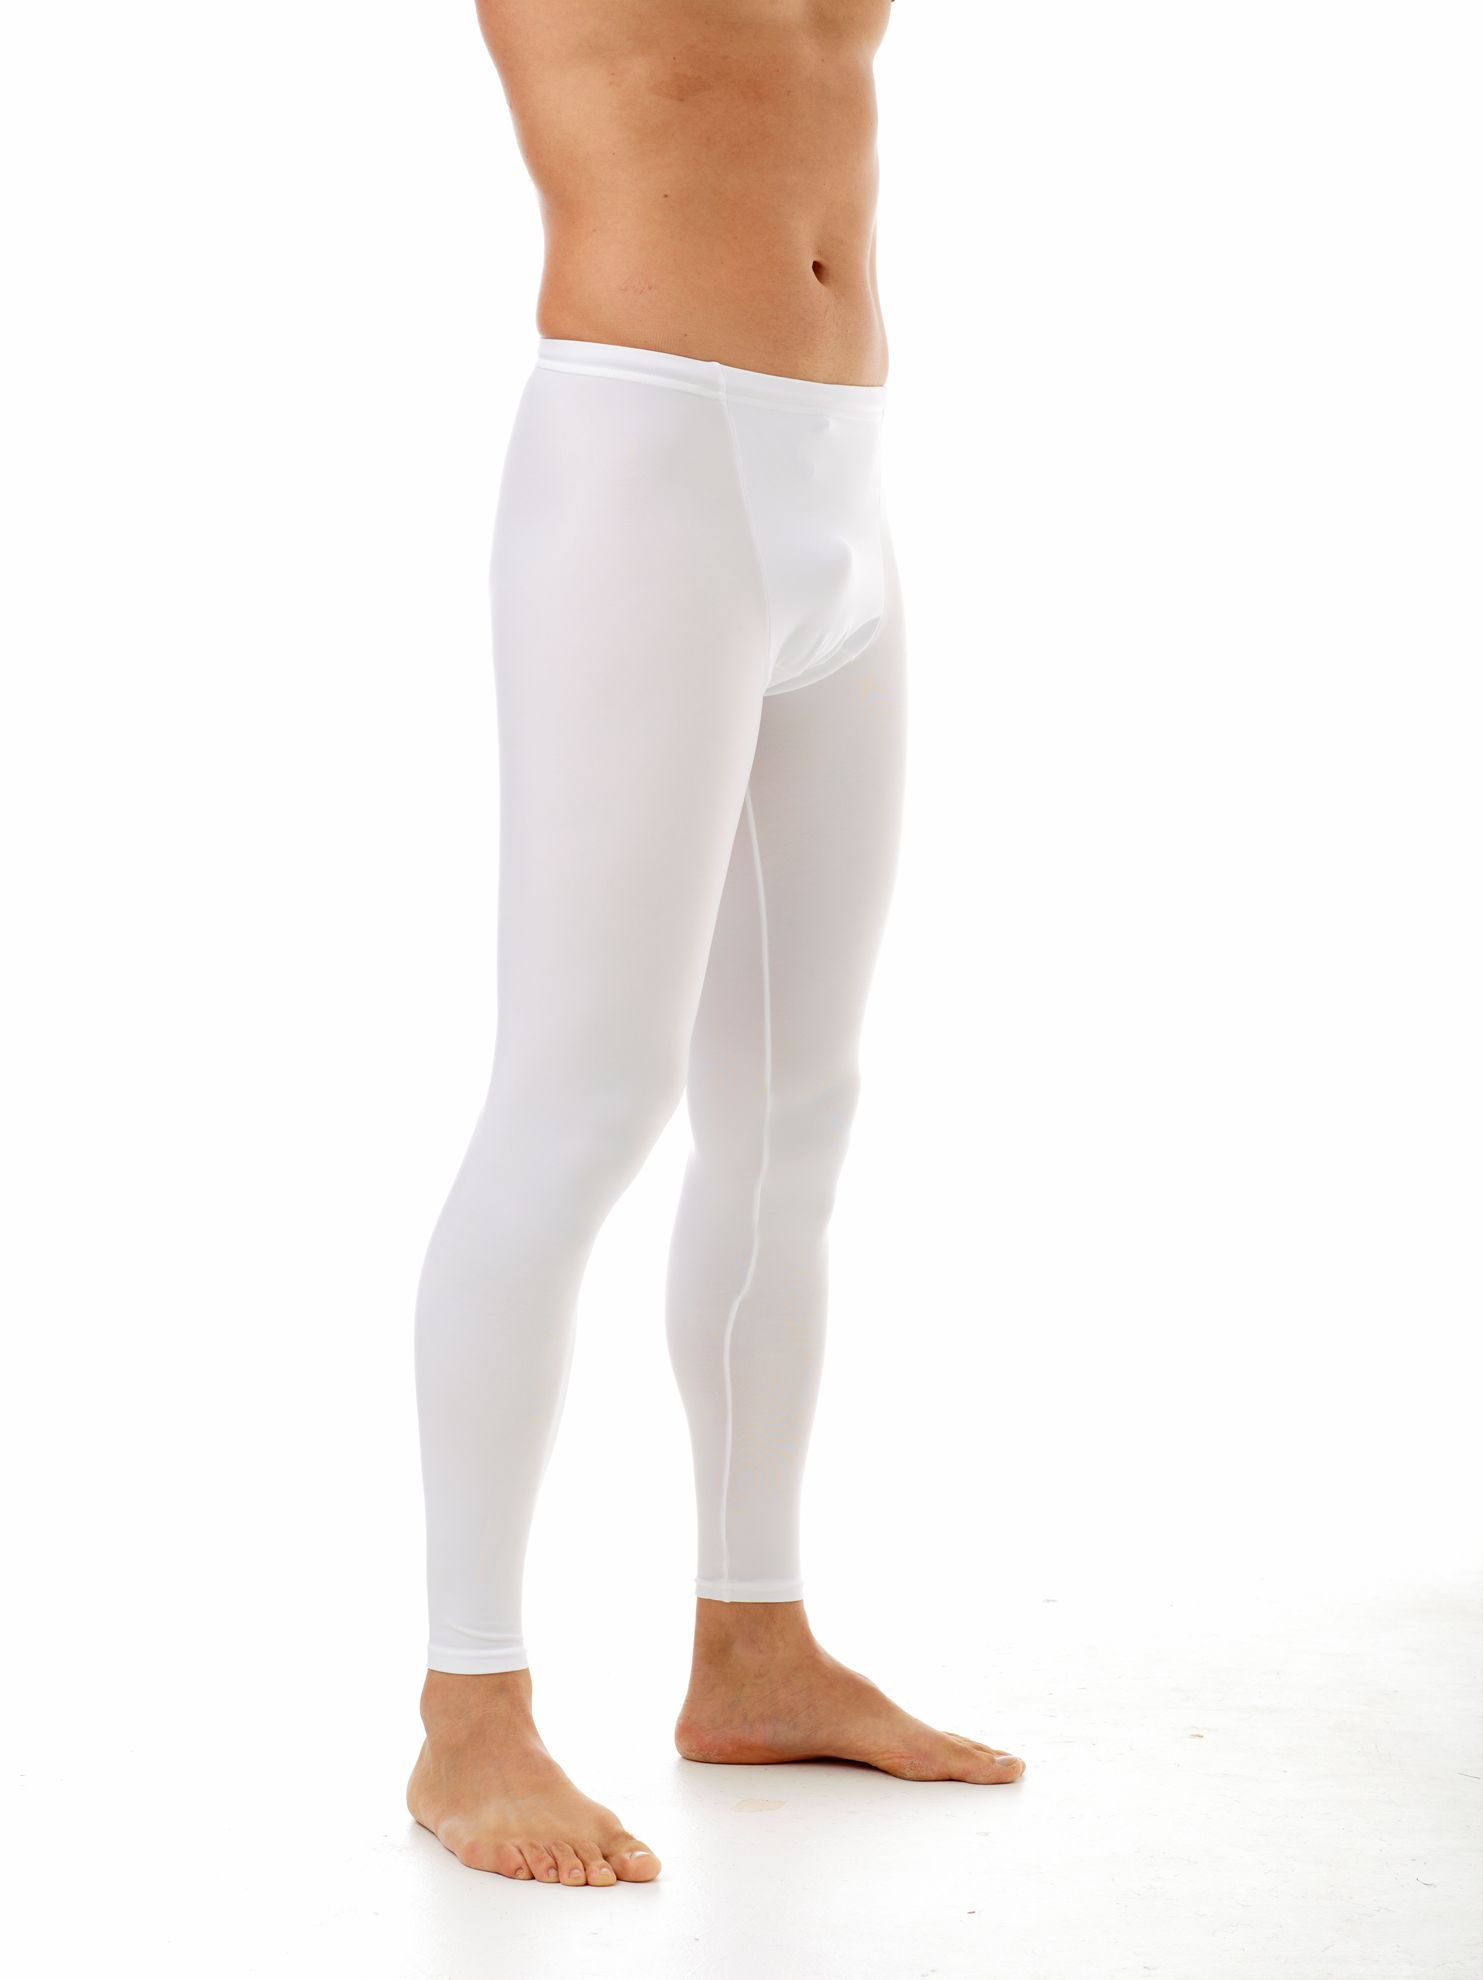 Picture of Microfiber Compression Pants